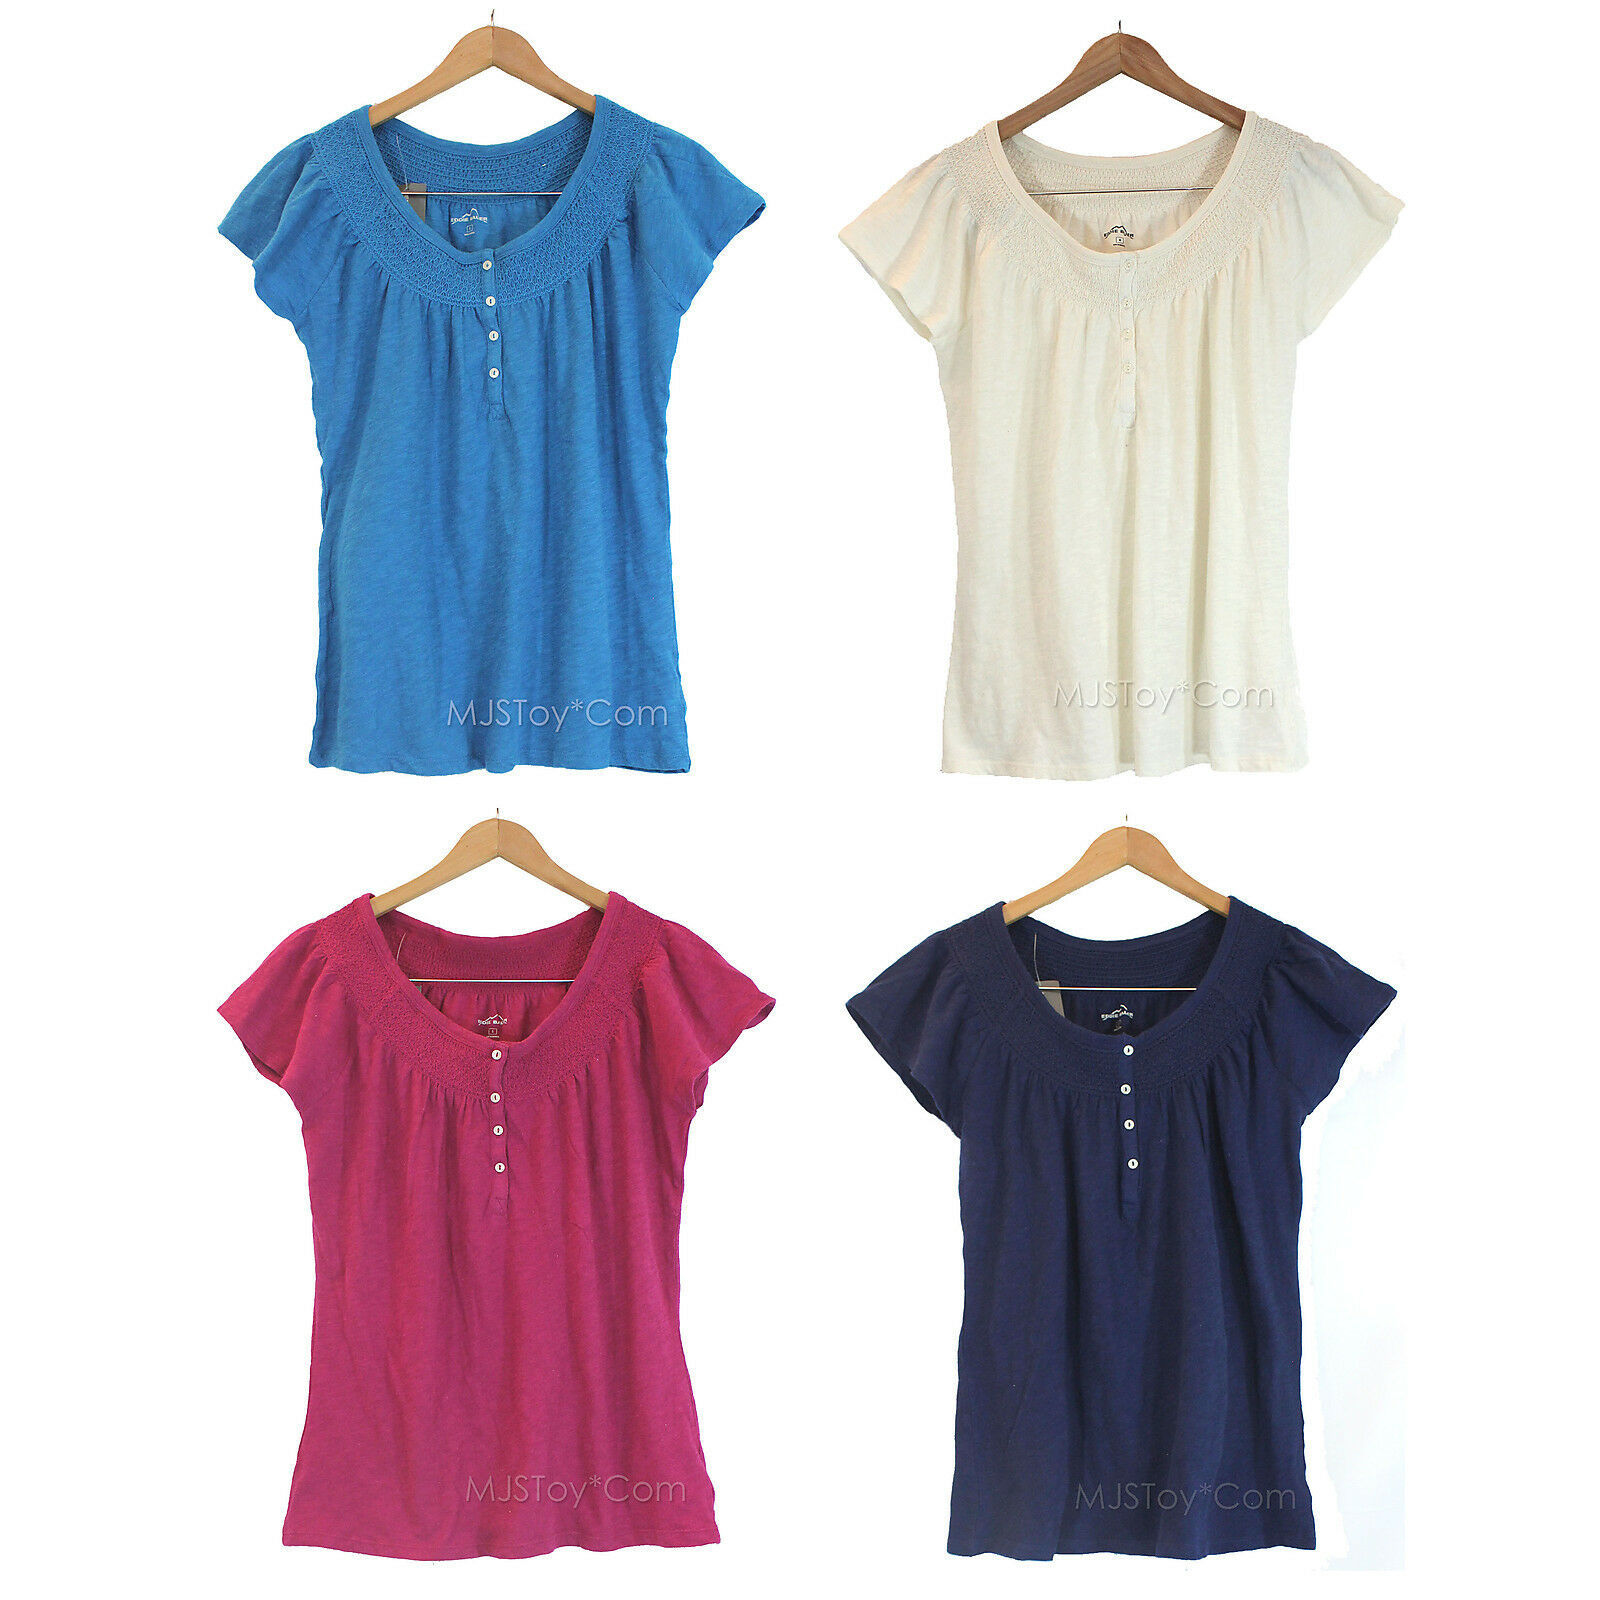 NWT Eddie Bauer Peasant Blouse Top Short Sleeve Shirt 100% Soft Cotton 4 colors - $24.99